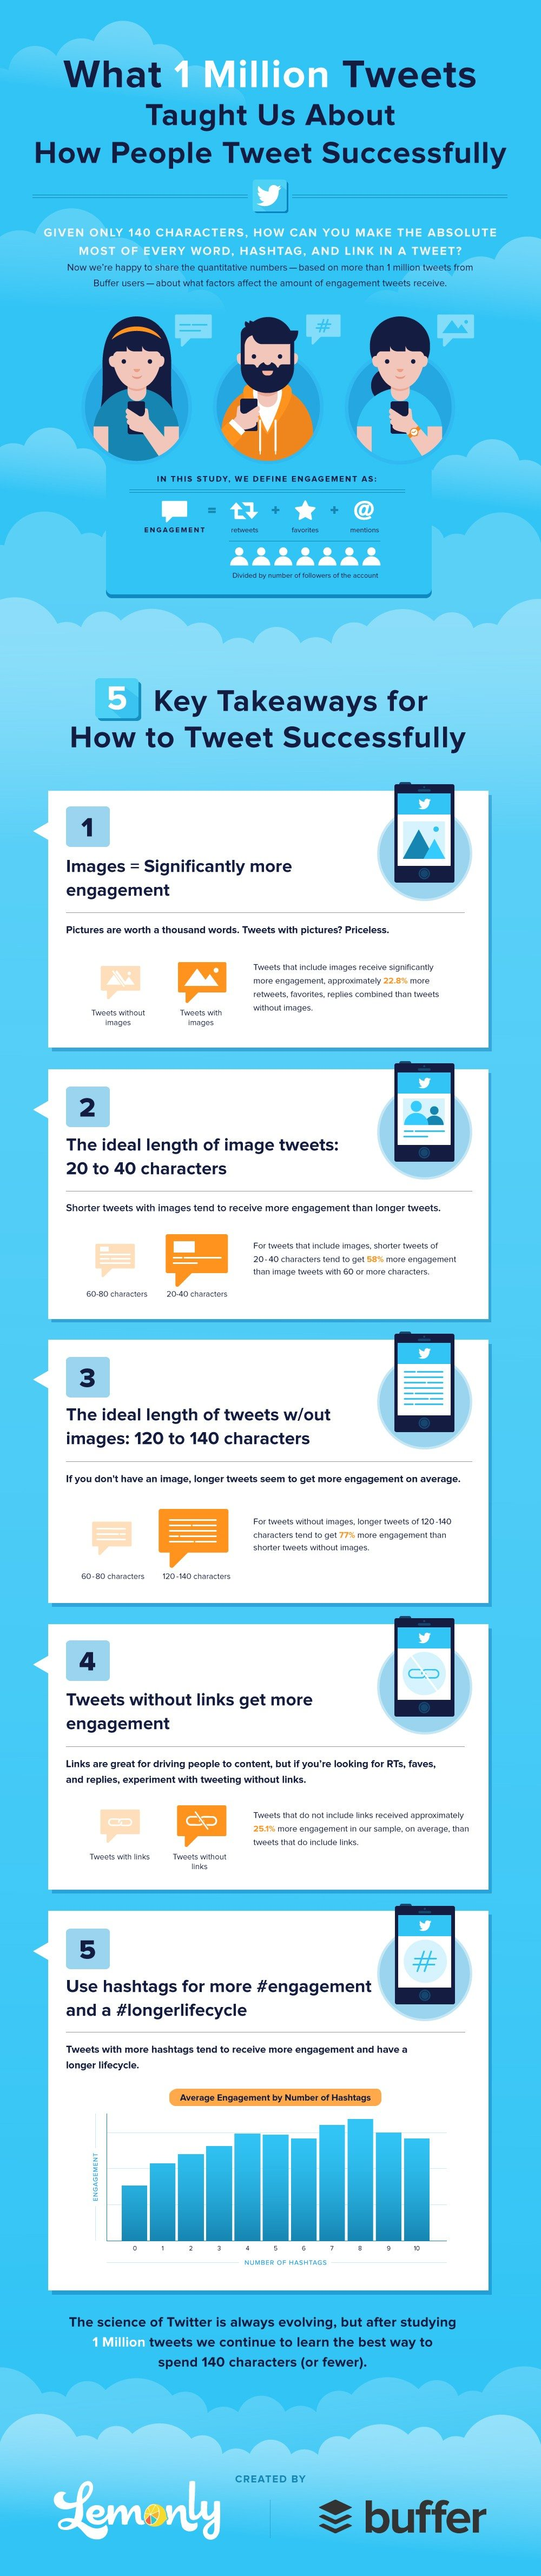 Buffer Lemonly twitter stats infographic